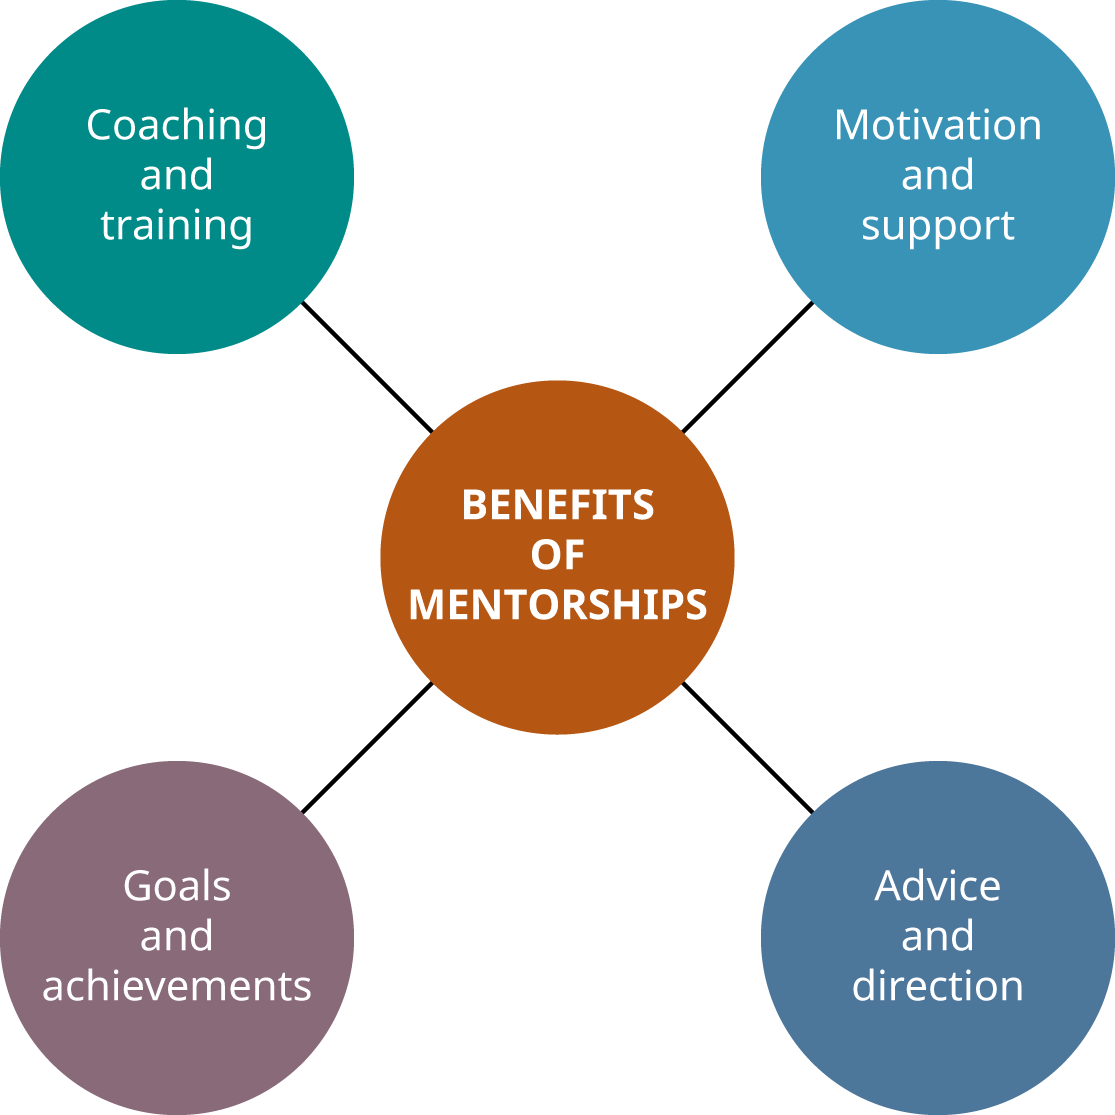 Benefits of Mentorships include coaching and training, motivation and support, goals and achievements, and advice and direction.